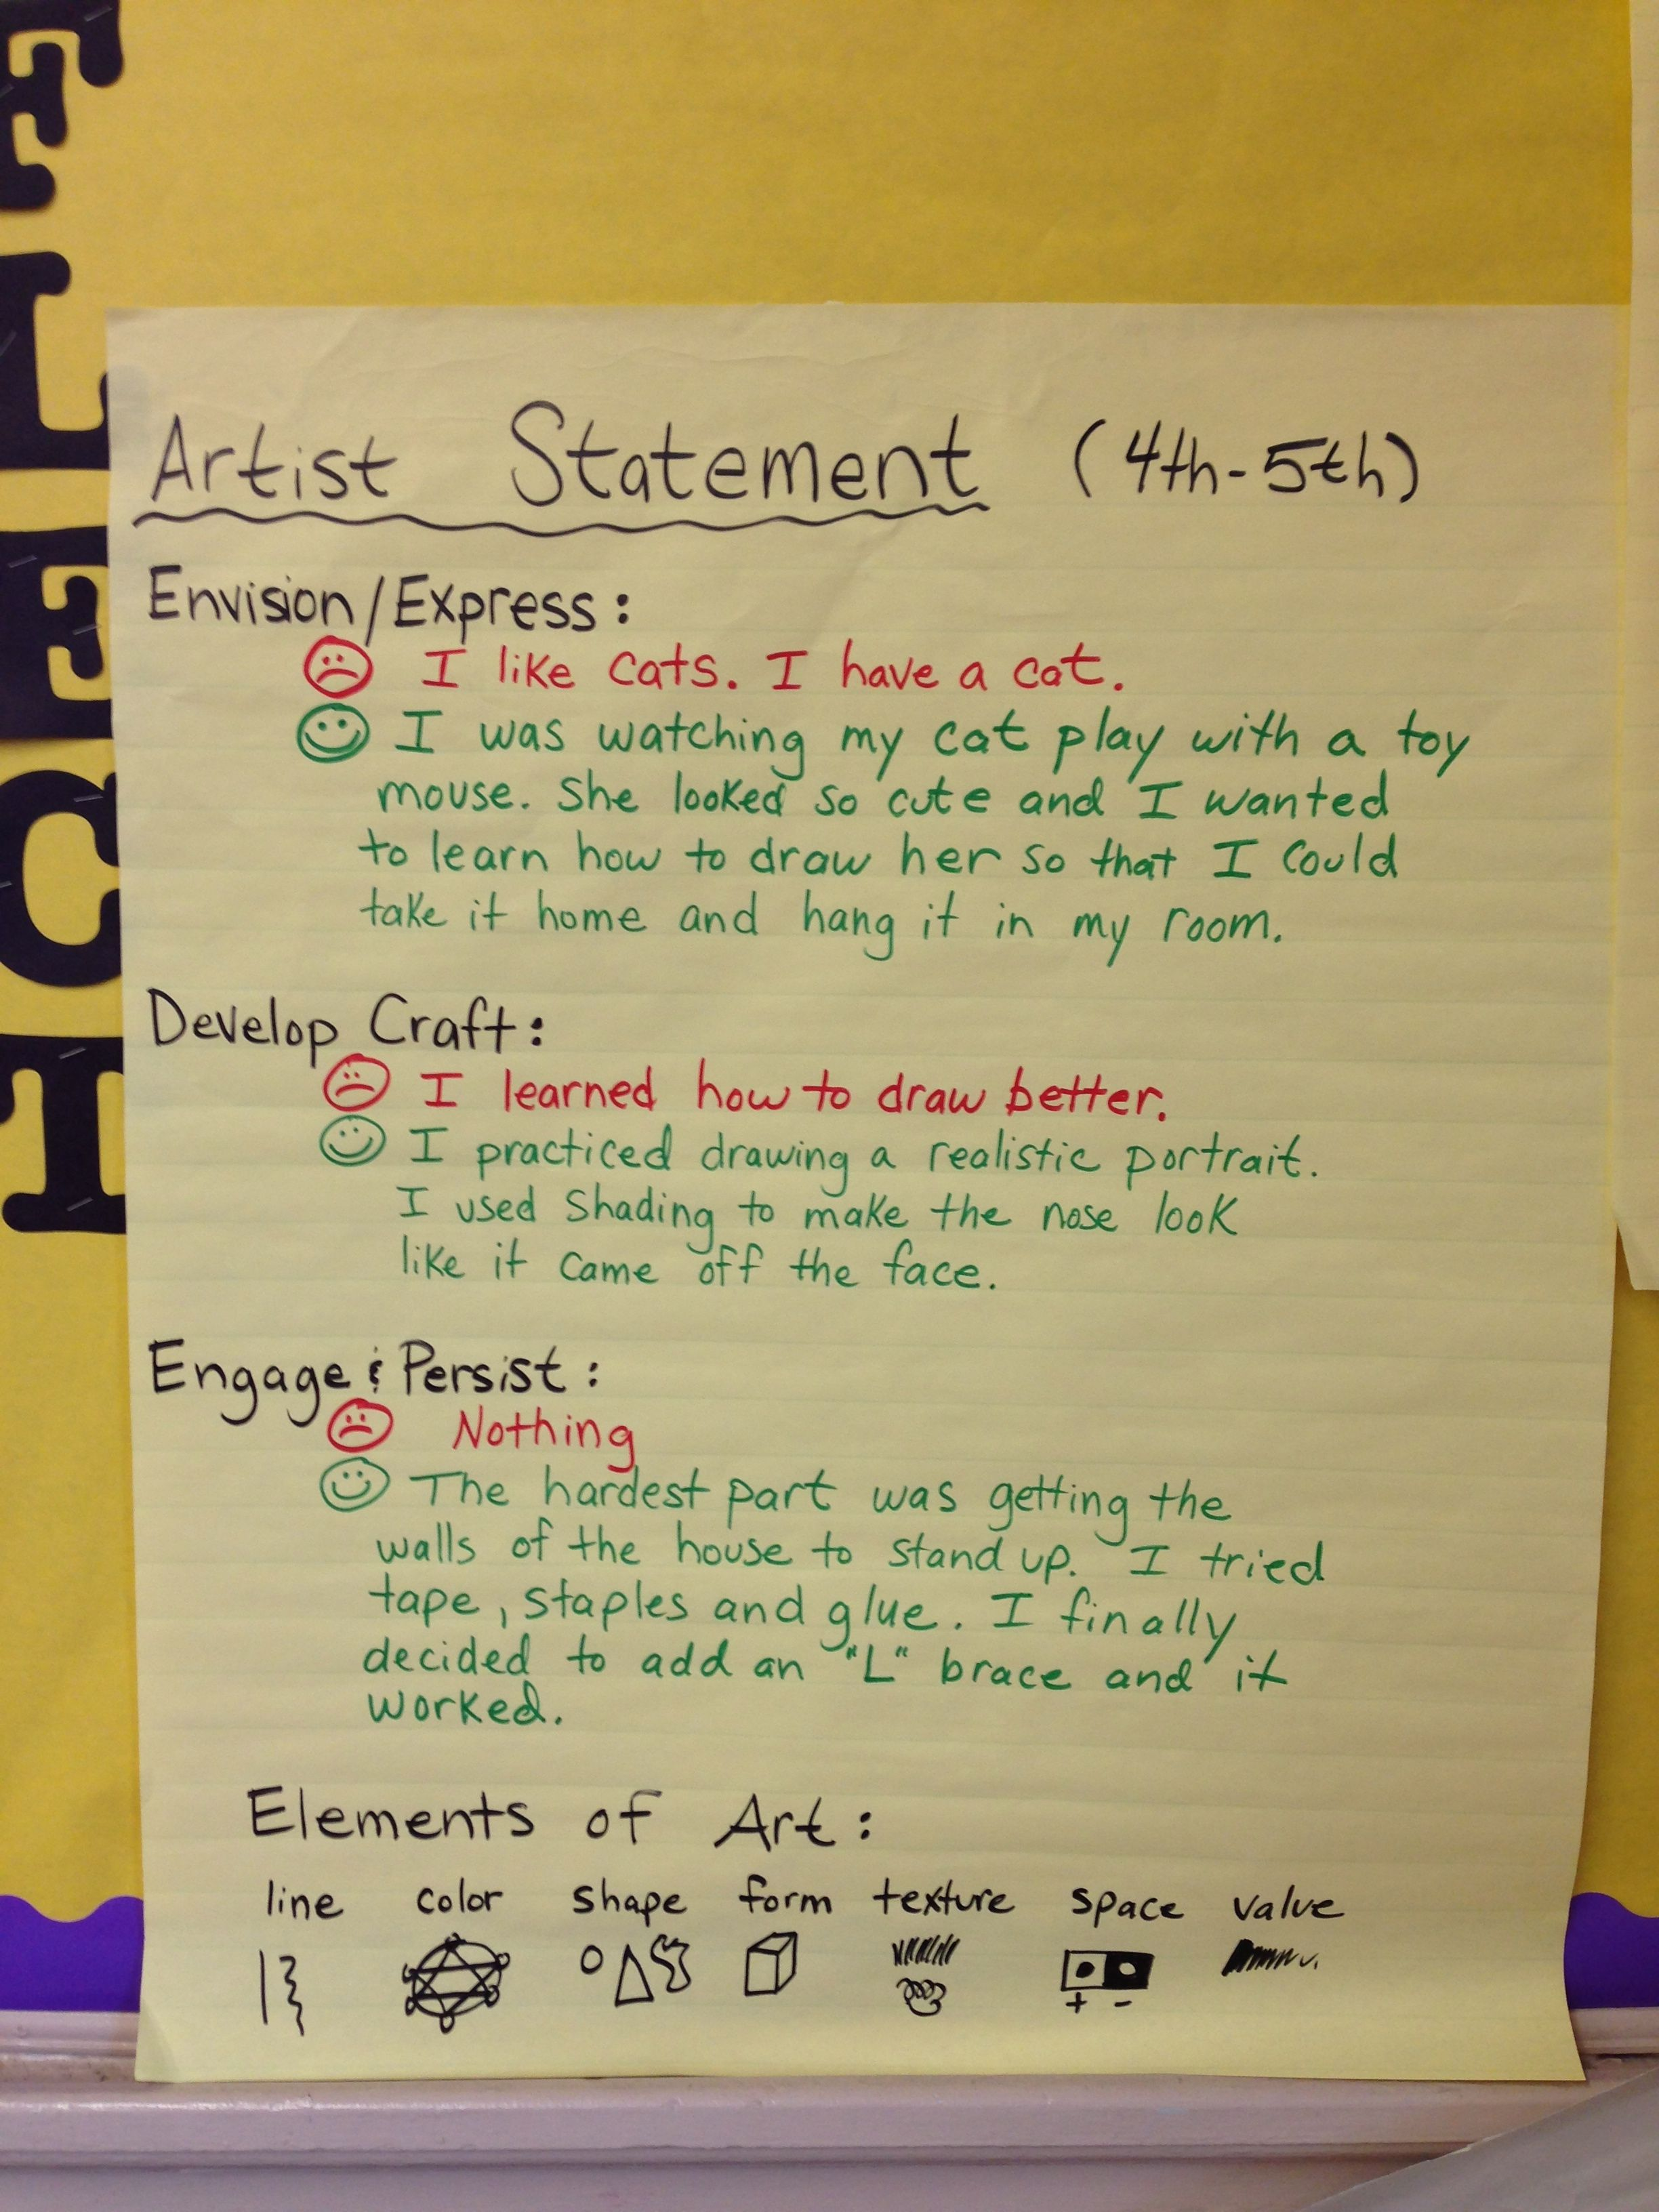 Artist Statement Choice-based Art Room 2012-13